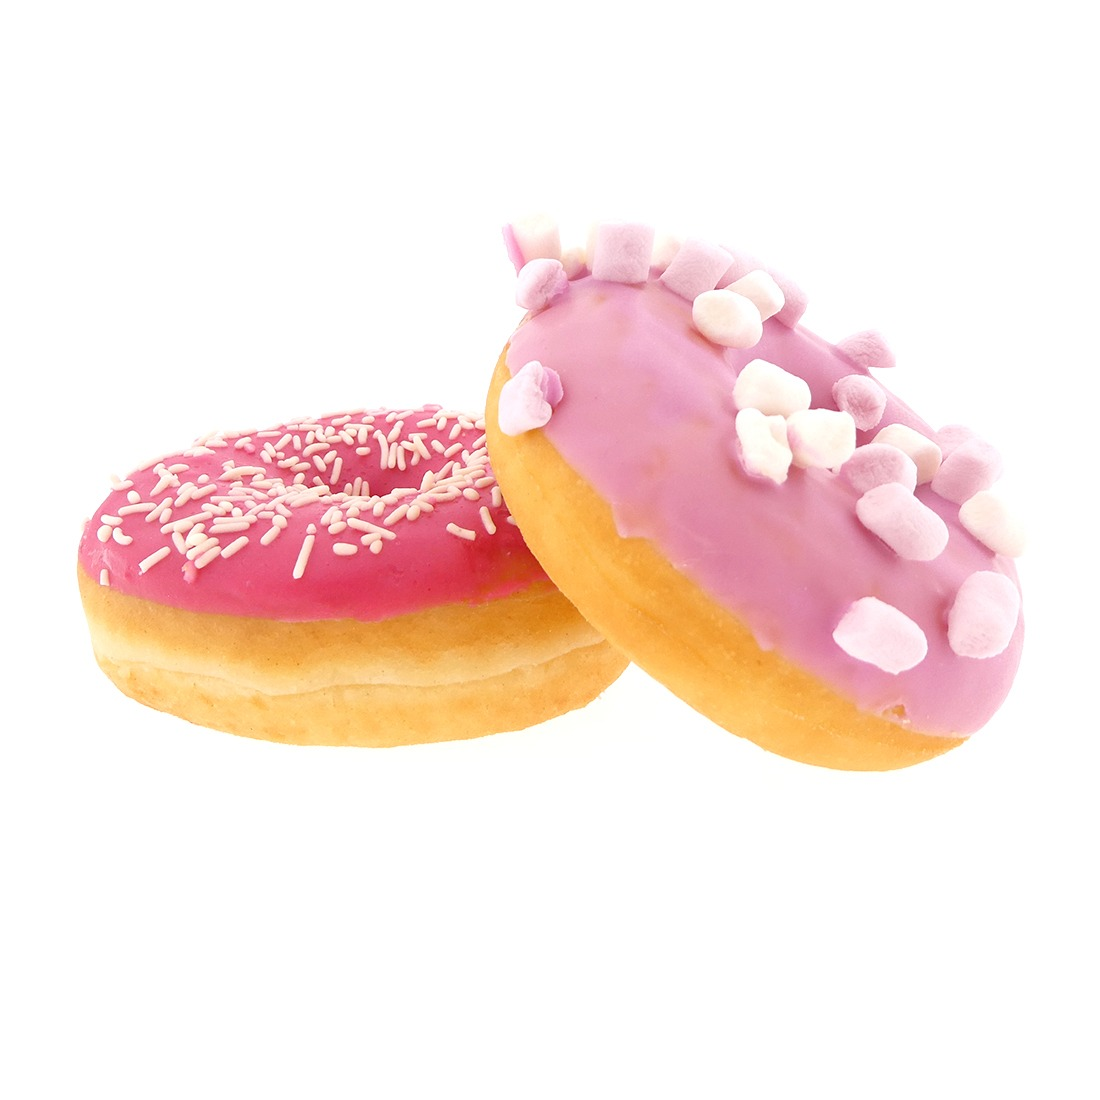 SMall 1 donuts